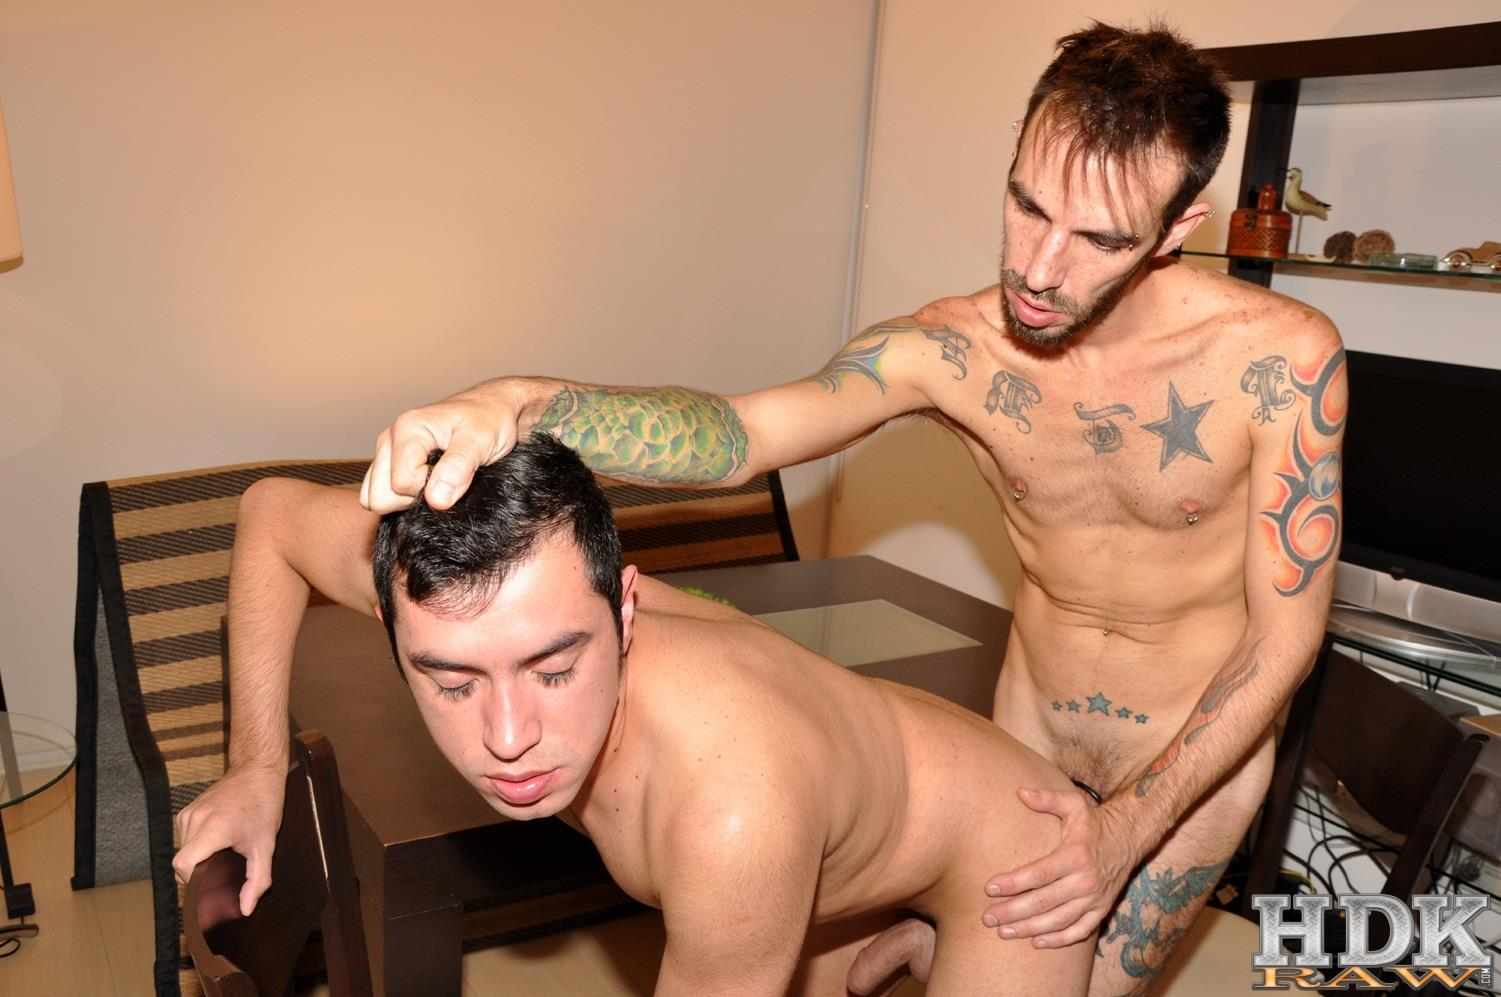 HDK-Raw-Diego-and-Gastonix-Big-Uncut-Cock-Fucking-Bareback-Amateur-Gay-Porn-12 Amateur Cum Hungry Bottom Takes A Big Uncut Cock Bareback